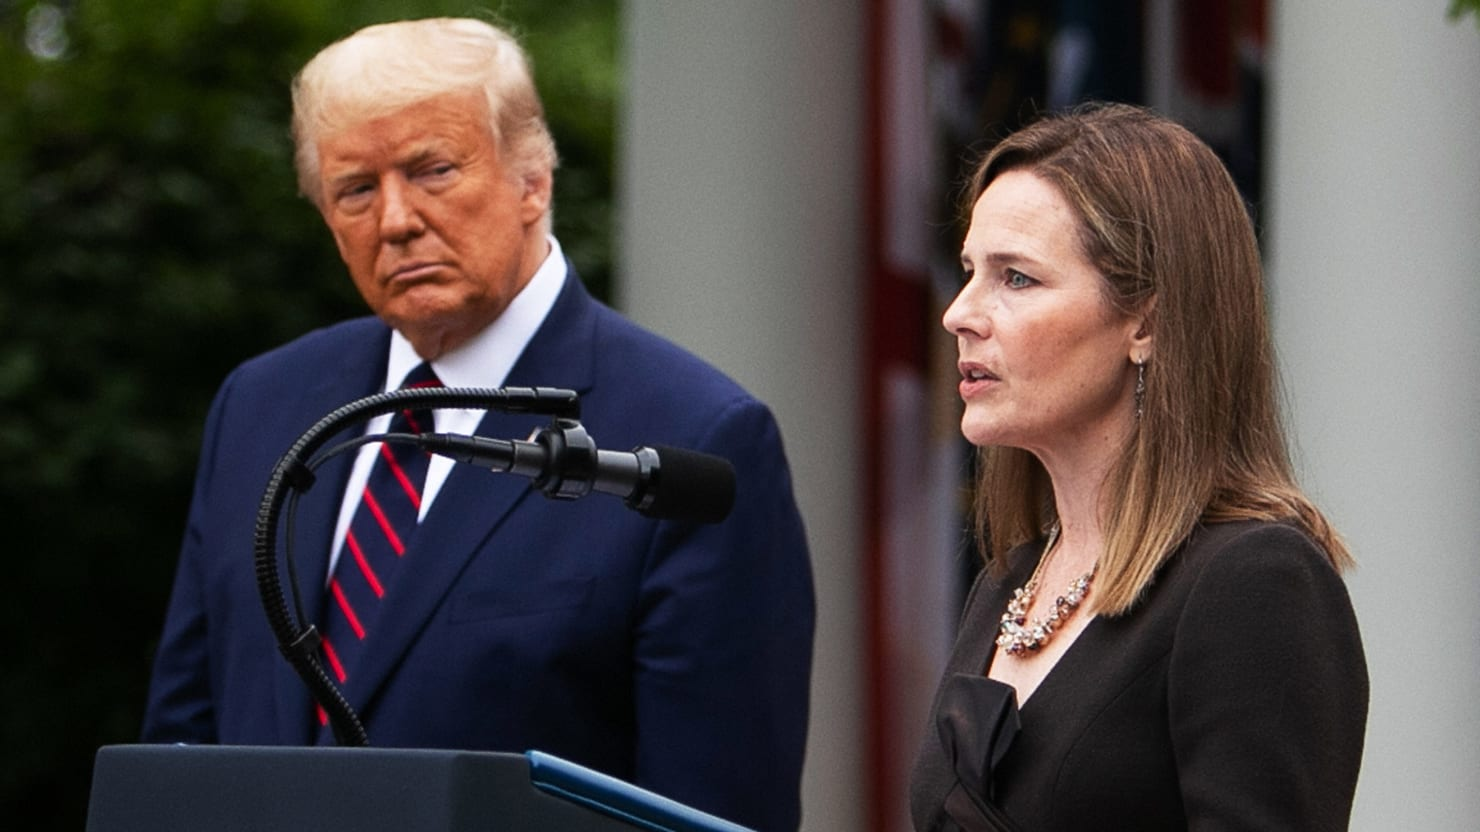 Does the Constitution Let Trump Round Up His Enemies? Amy Coney Barrett Won't Say.